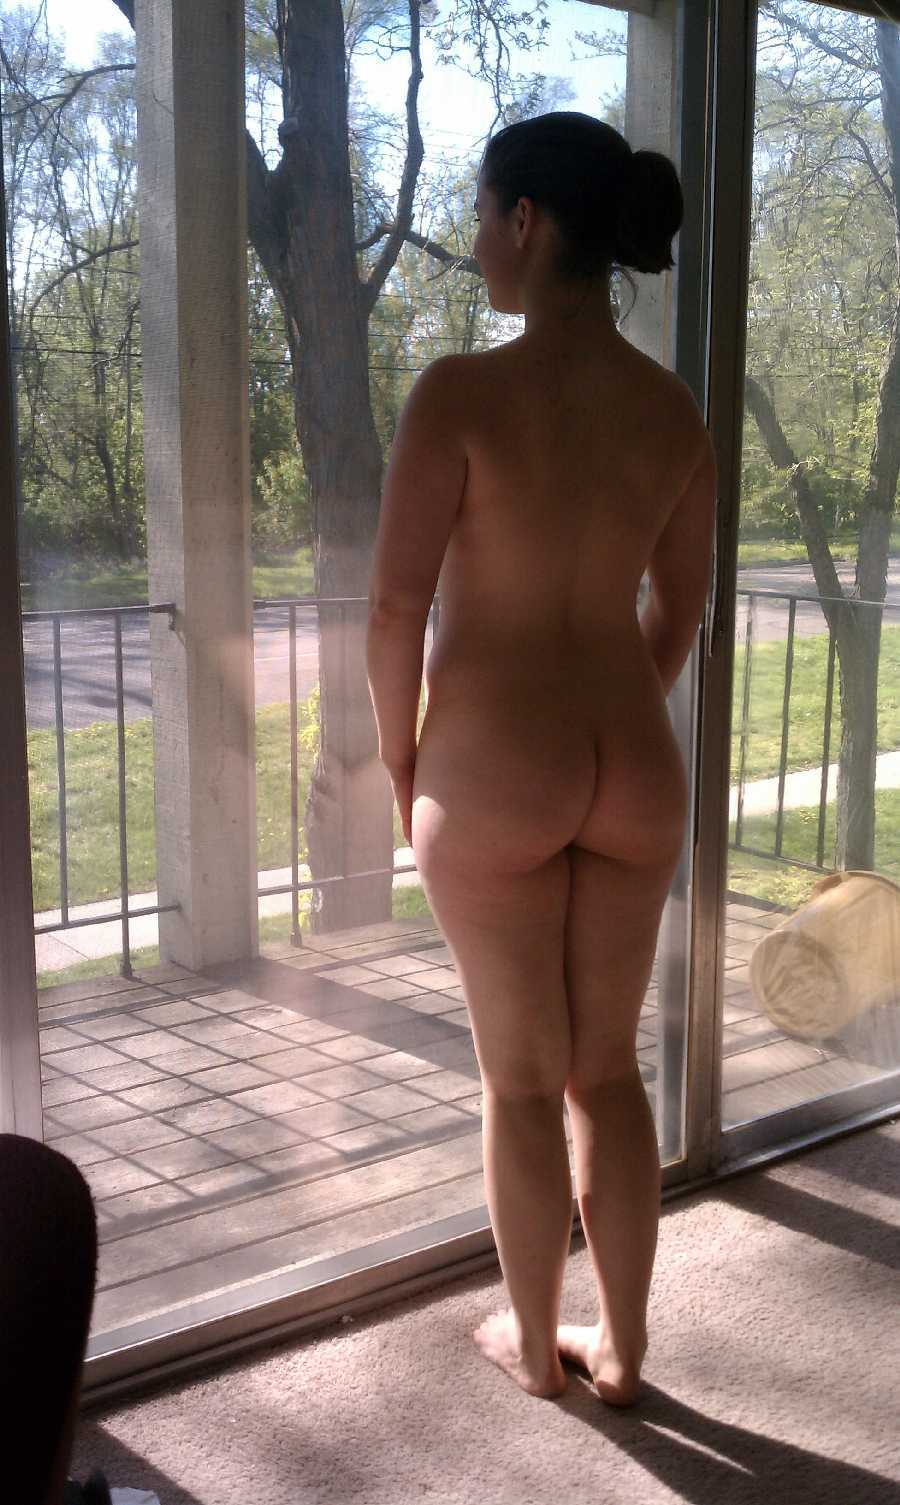 Wife nude in window, farm girl sex